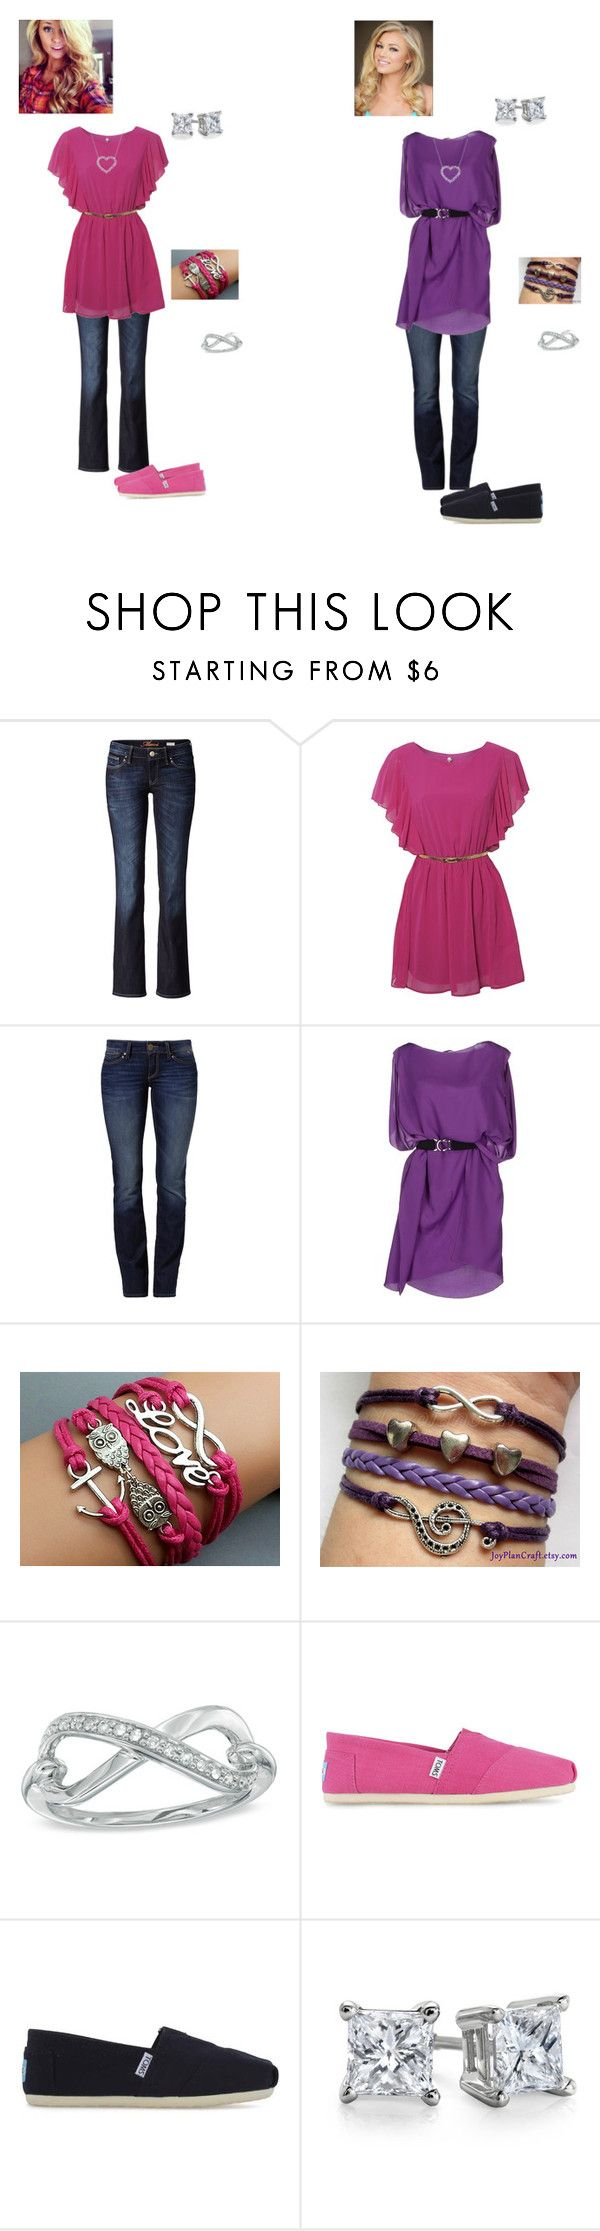 """""""Which Outfit do you like better?"""" by isongirls ❤ liked on Polyvore featuring Mavi, New York Industrie, TOMS, Blue Nile and Kwiat"""